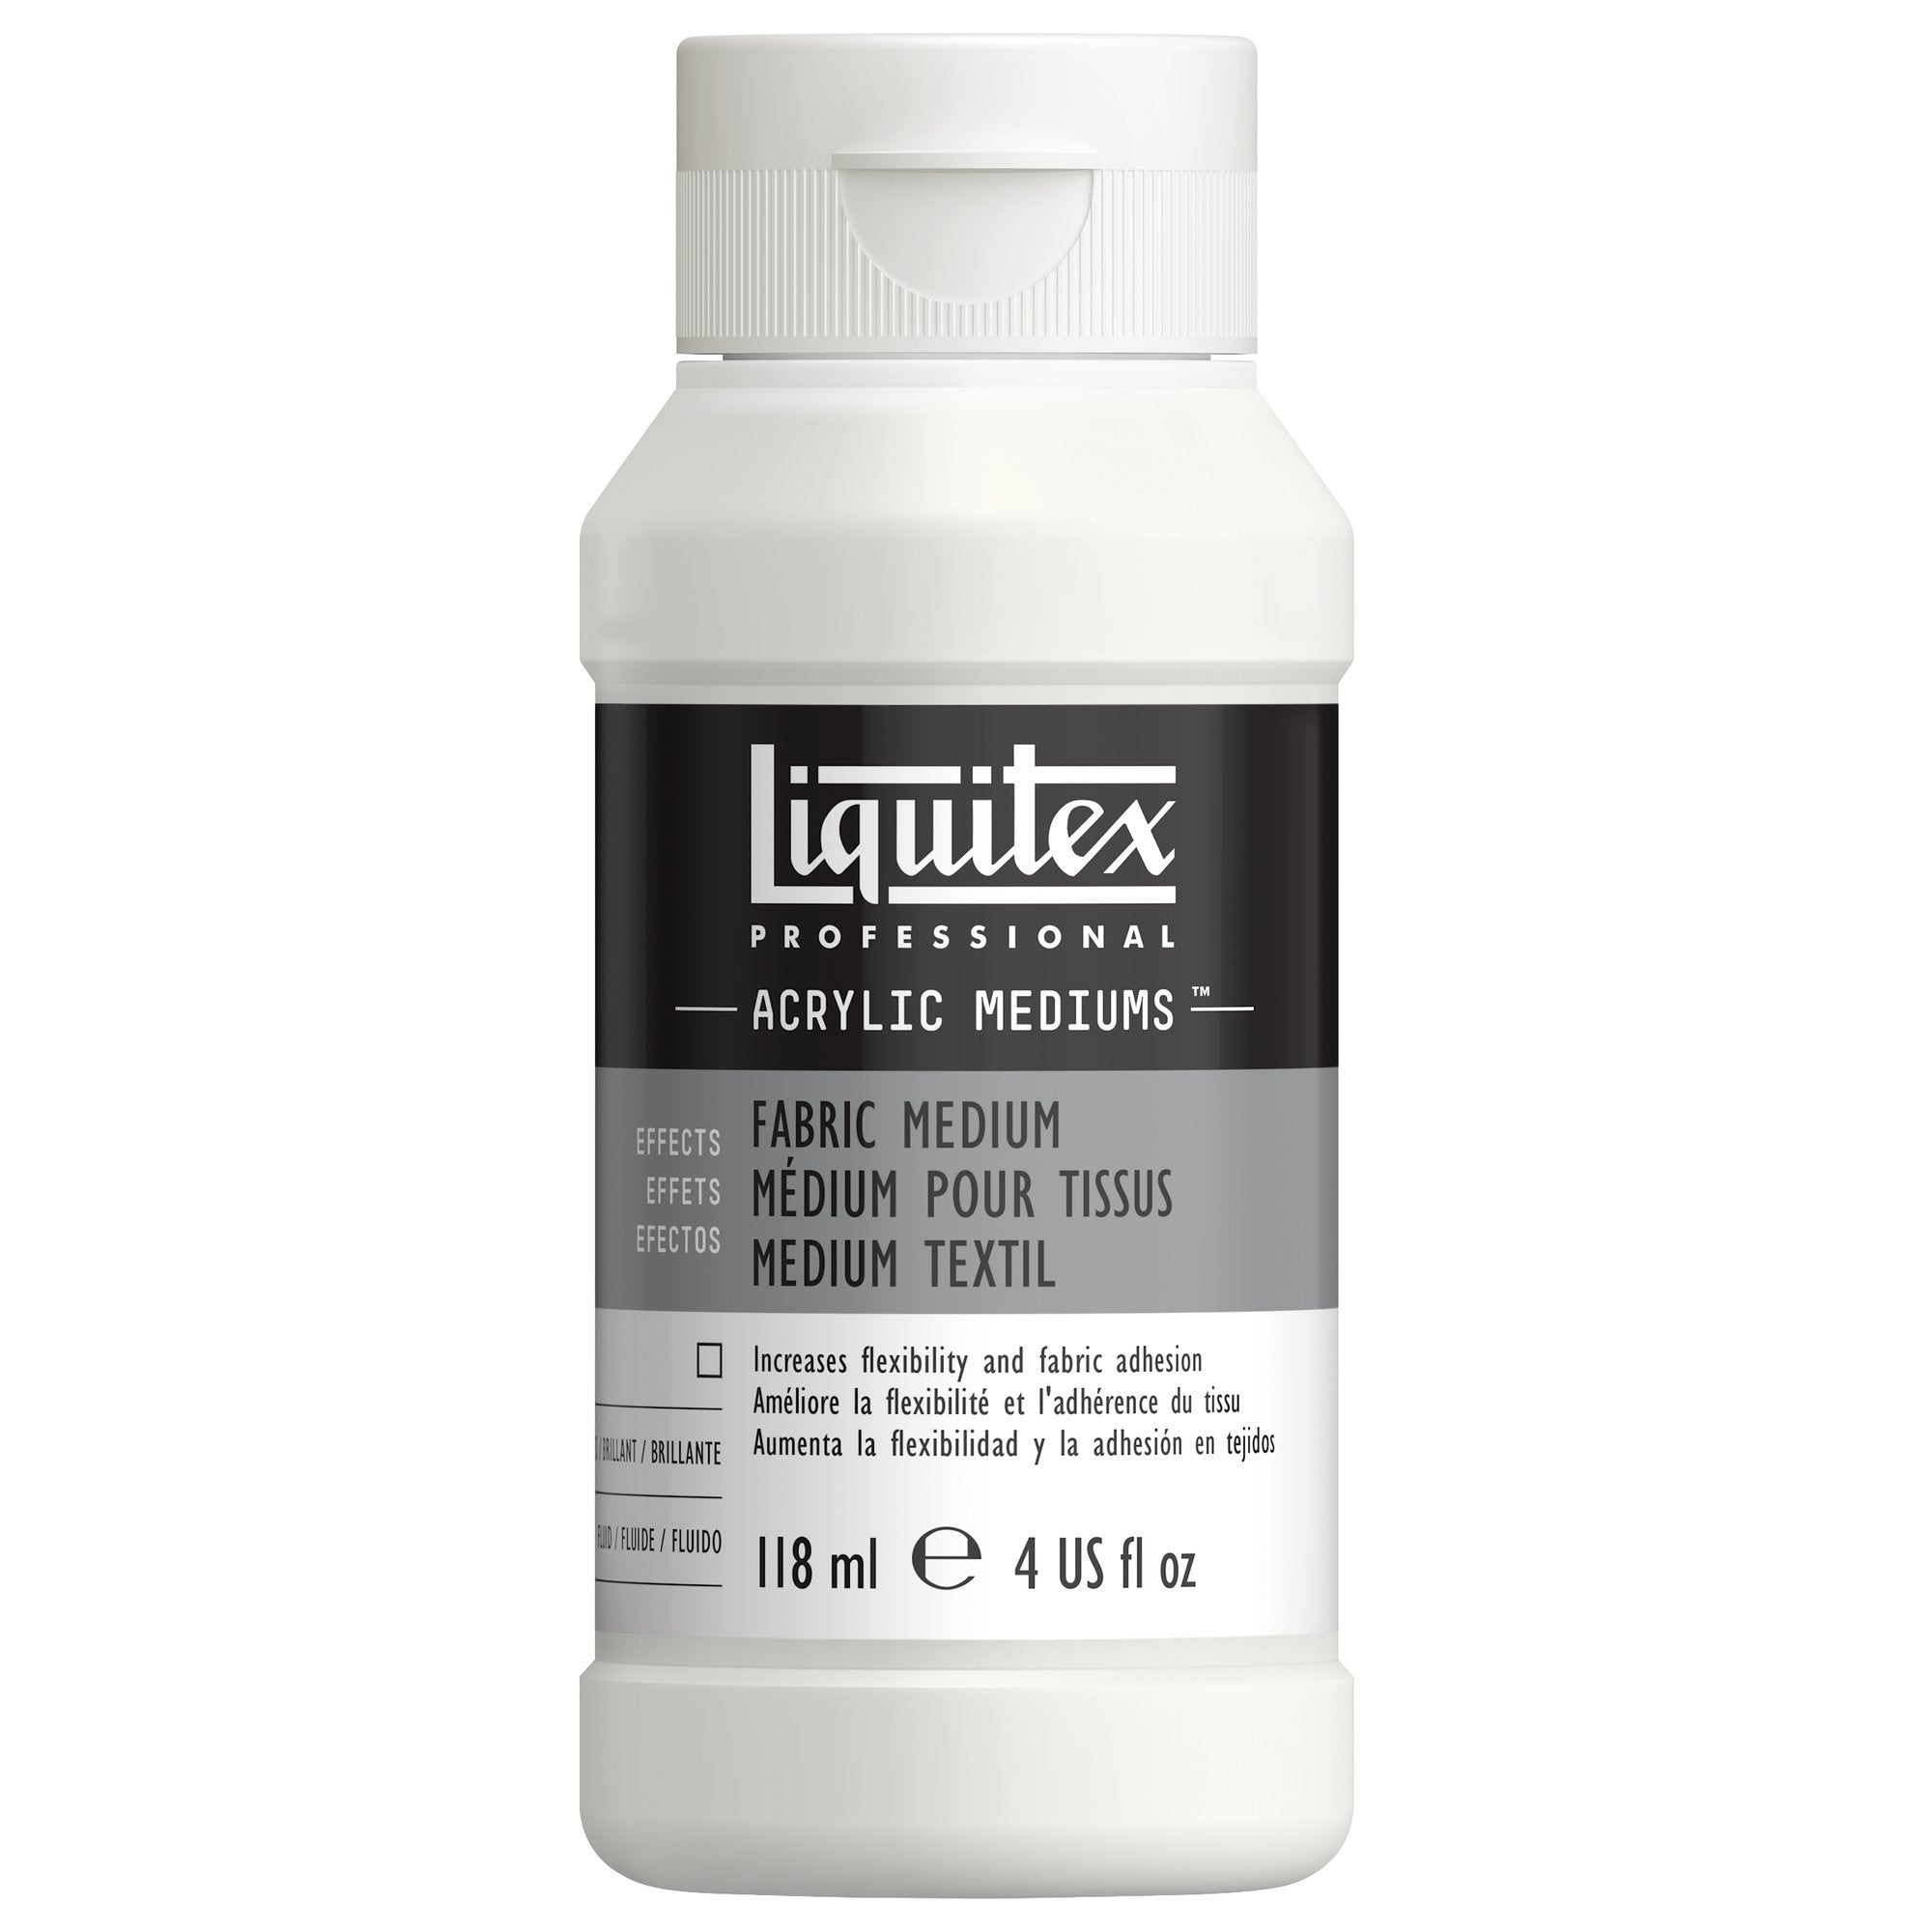 Liquitex Fabric Medium, 4 oz.